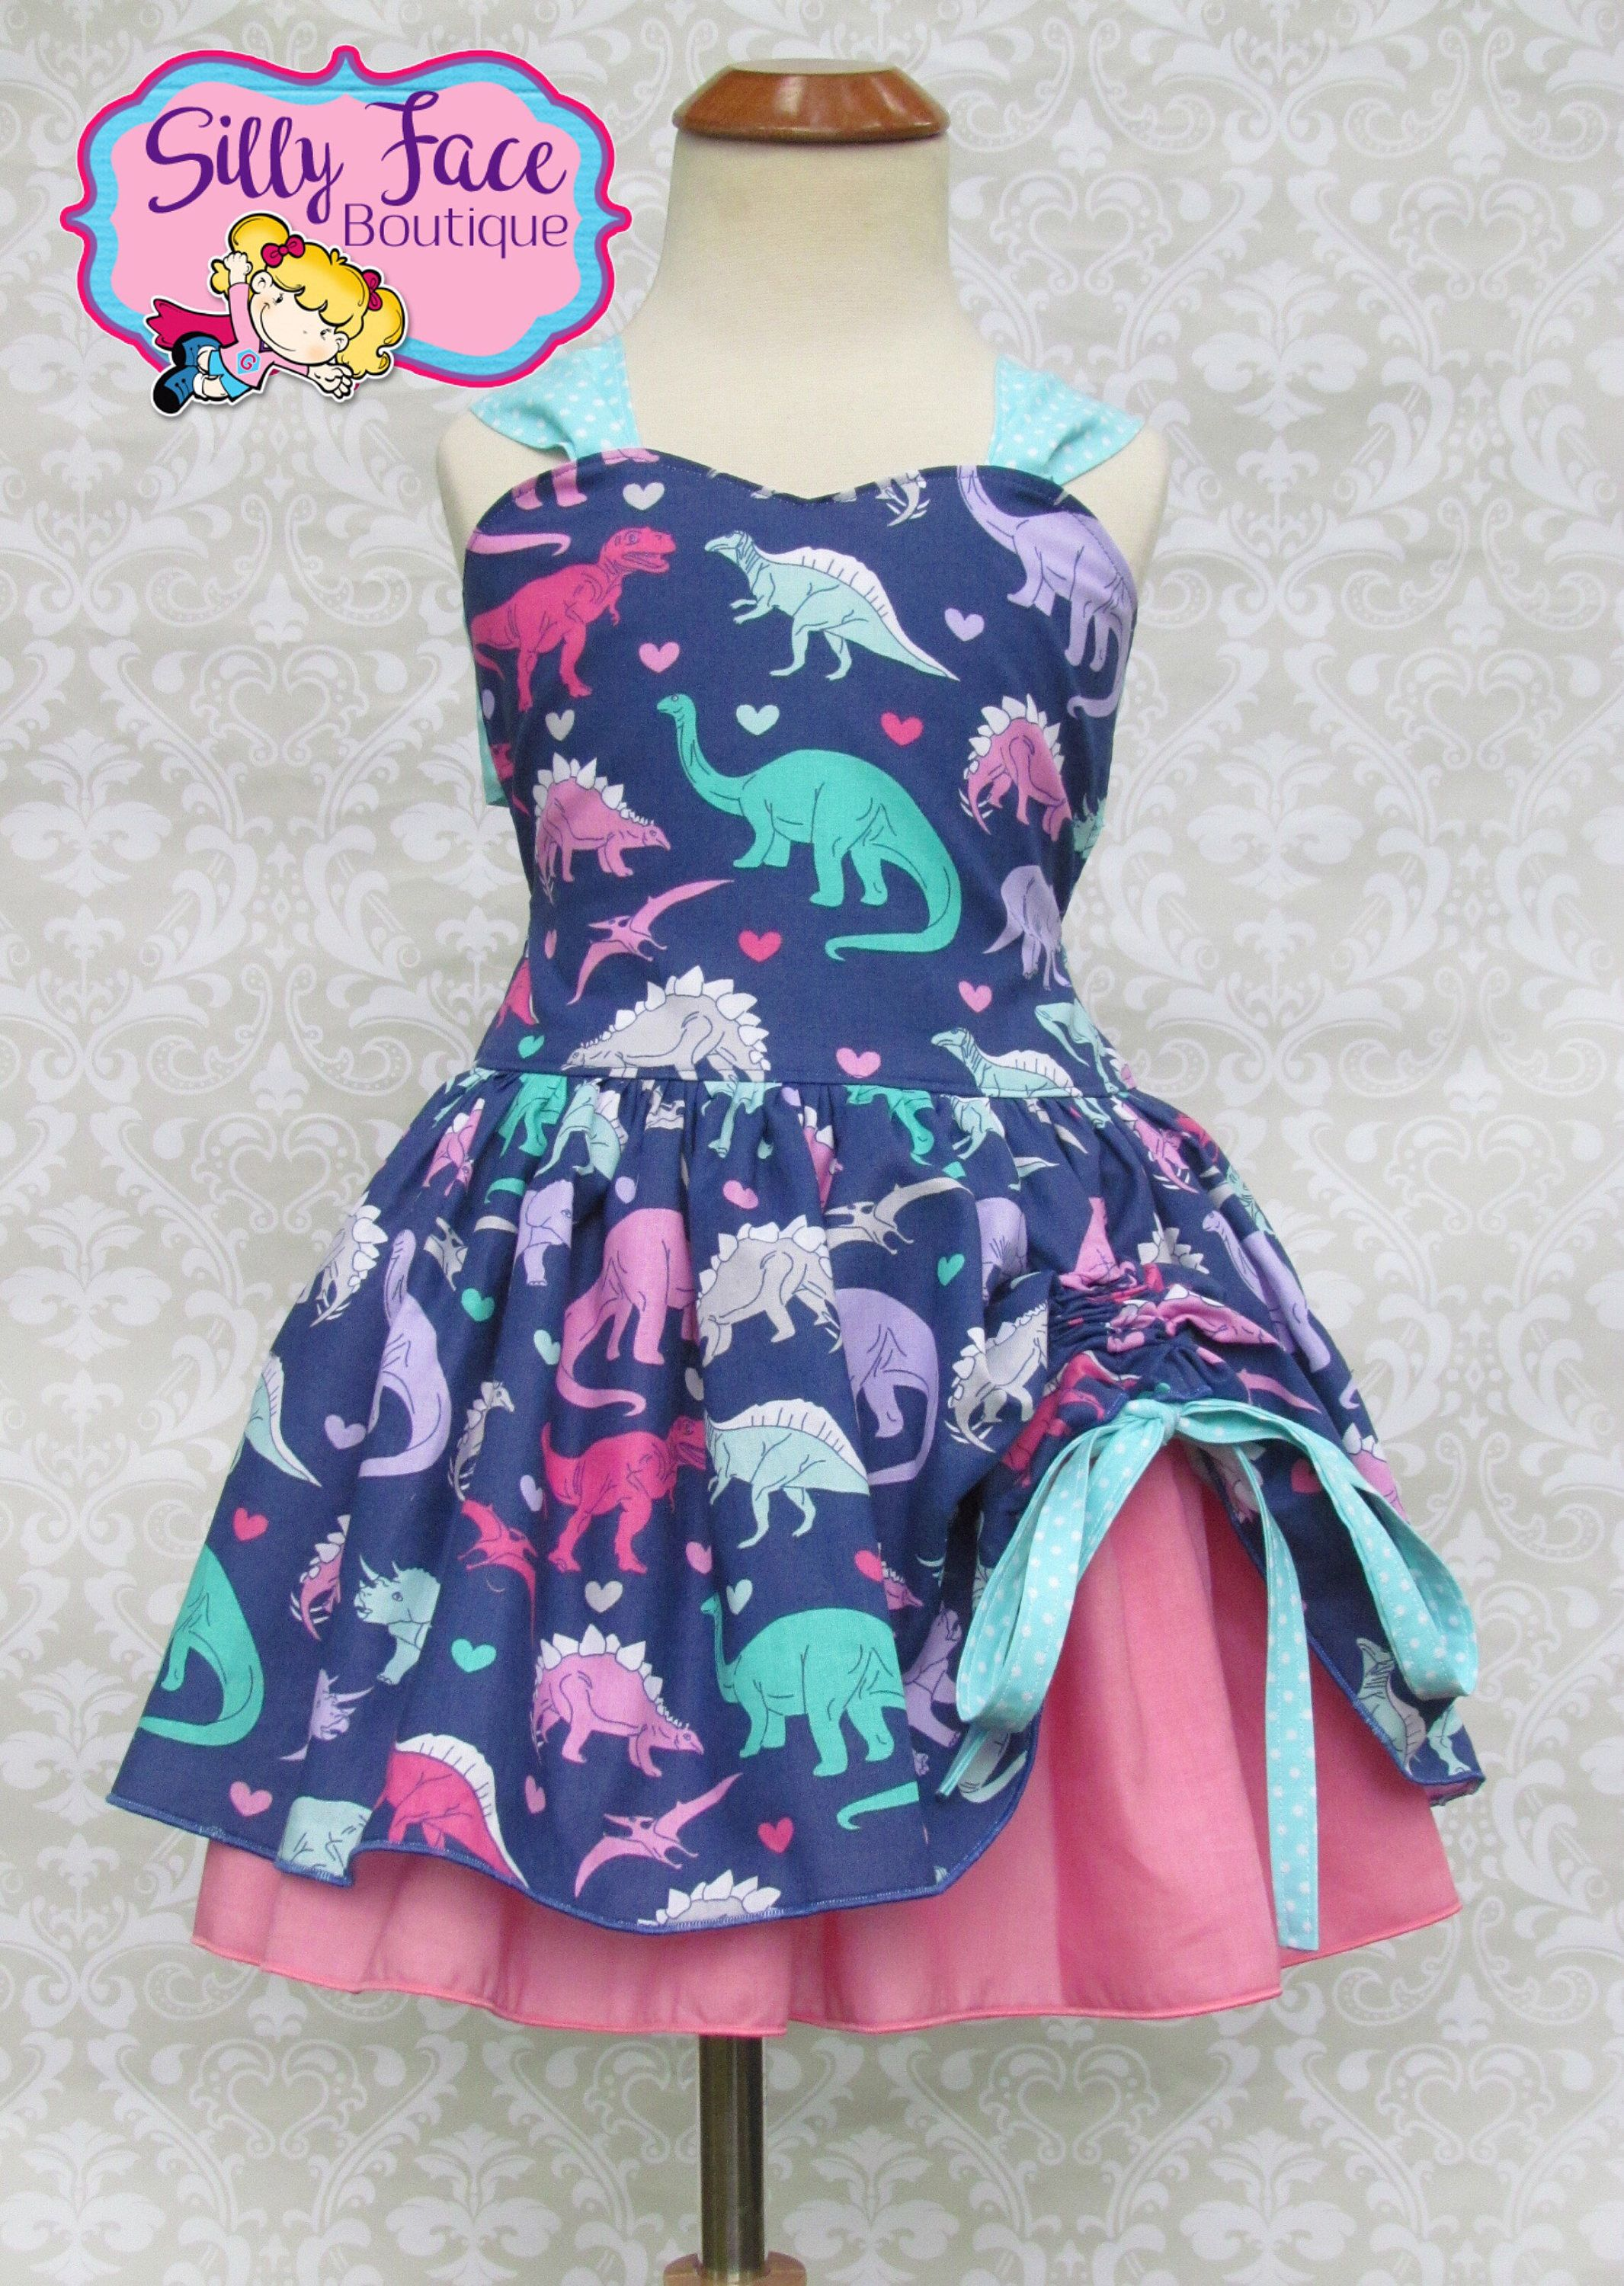 Jeinxcn Toddler Baby Girl Dinosaur Party Dress Summer Holiday Dress Outfit Clothes